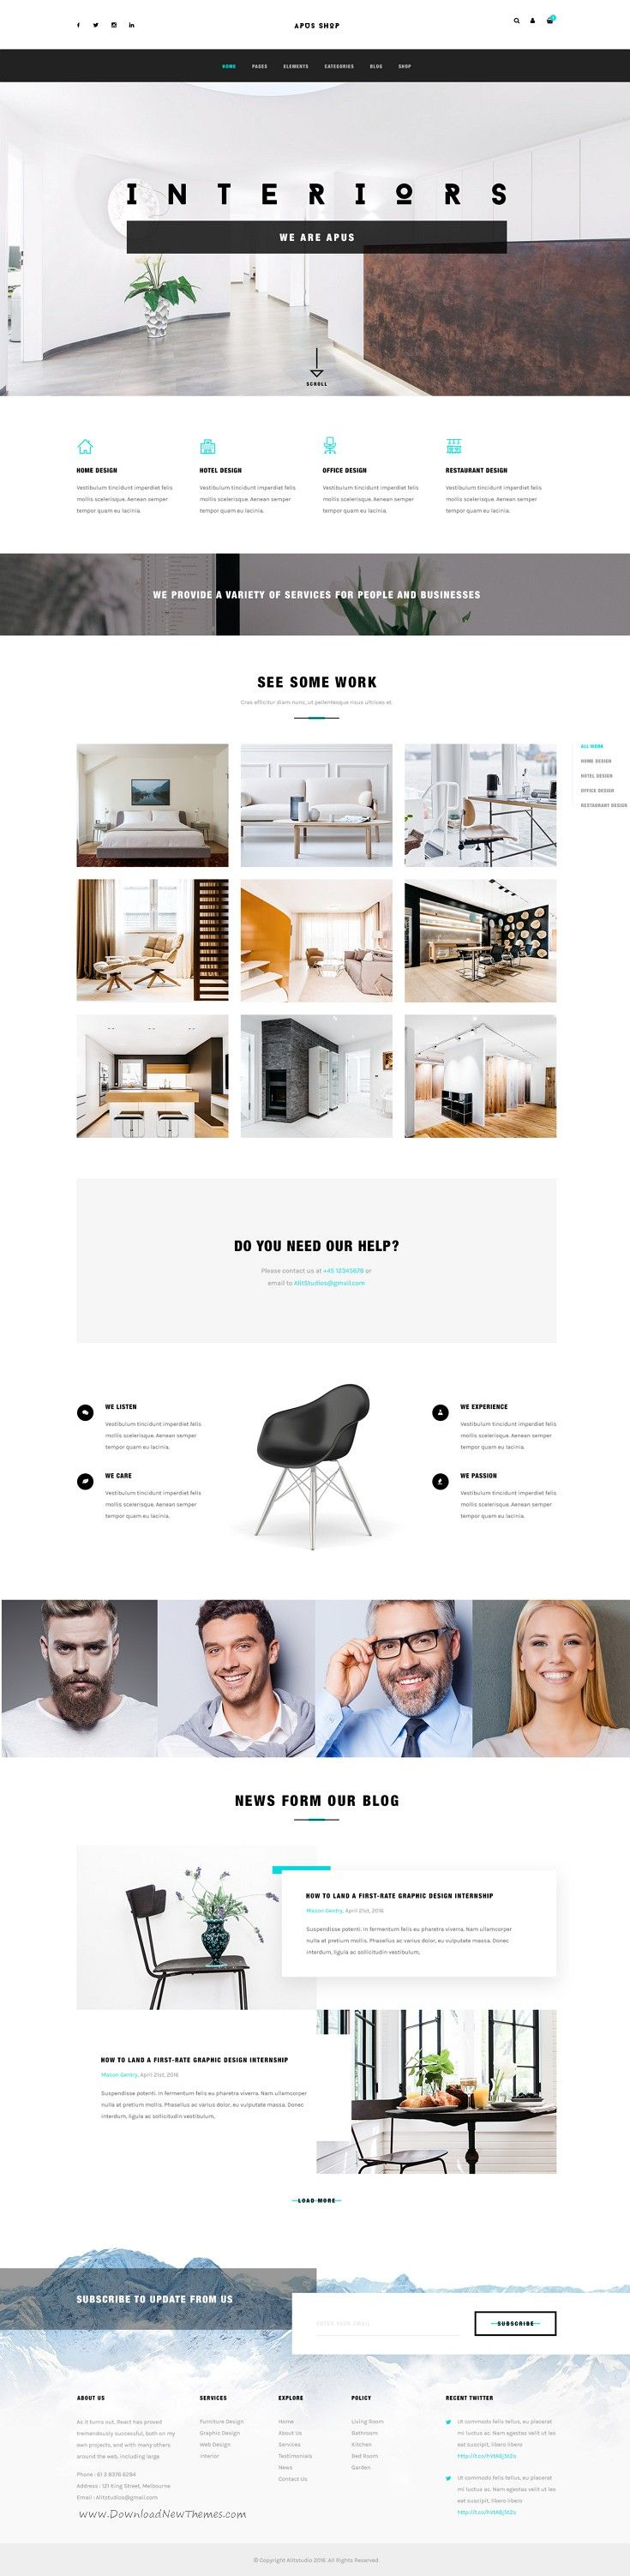 Apus is a uniquely designed 15 in 1 eCommerce website #template designed in #Photoshop with a simple & beautiful look. #interiors Download Now!